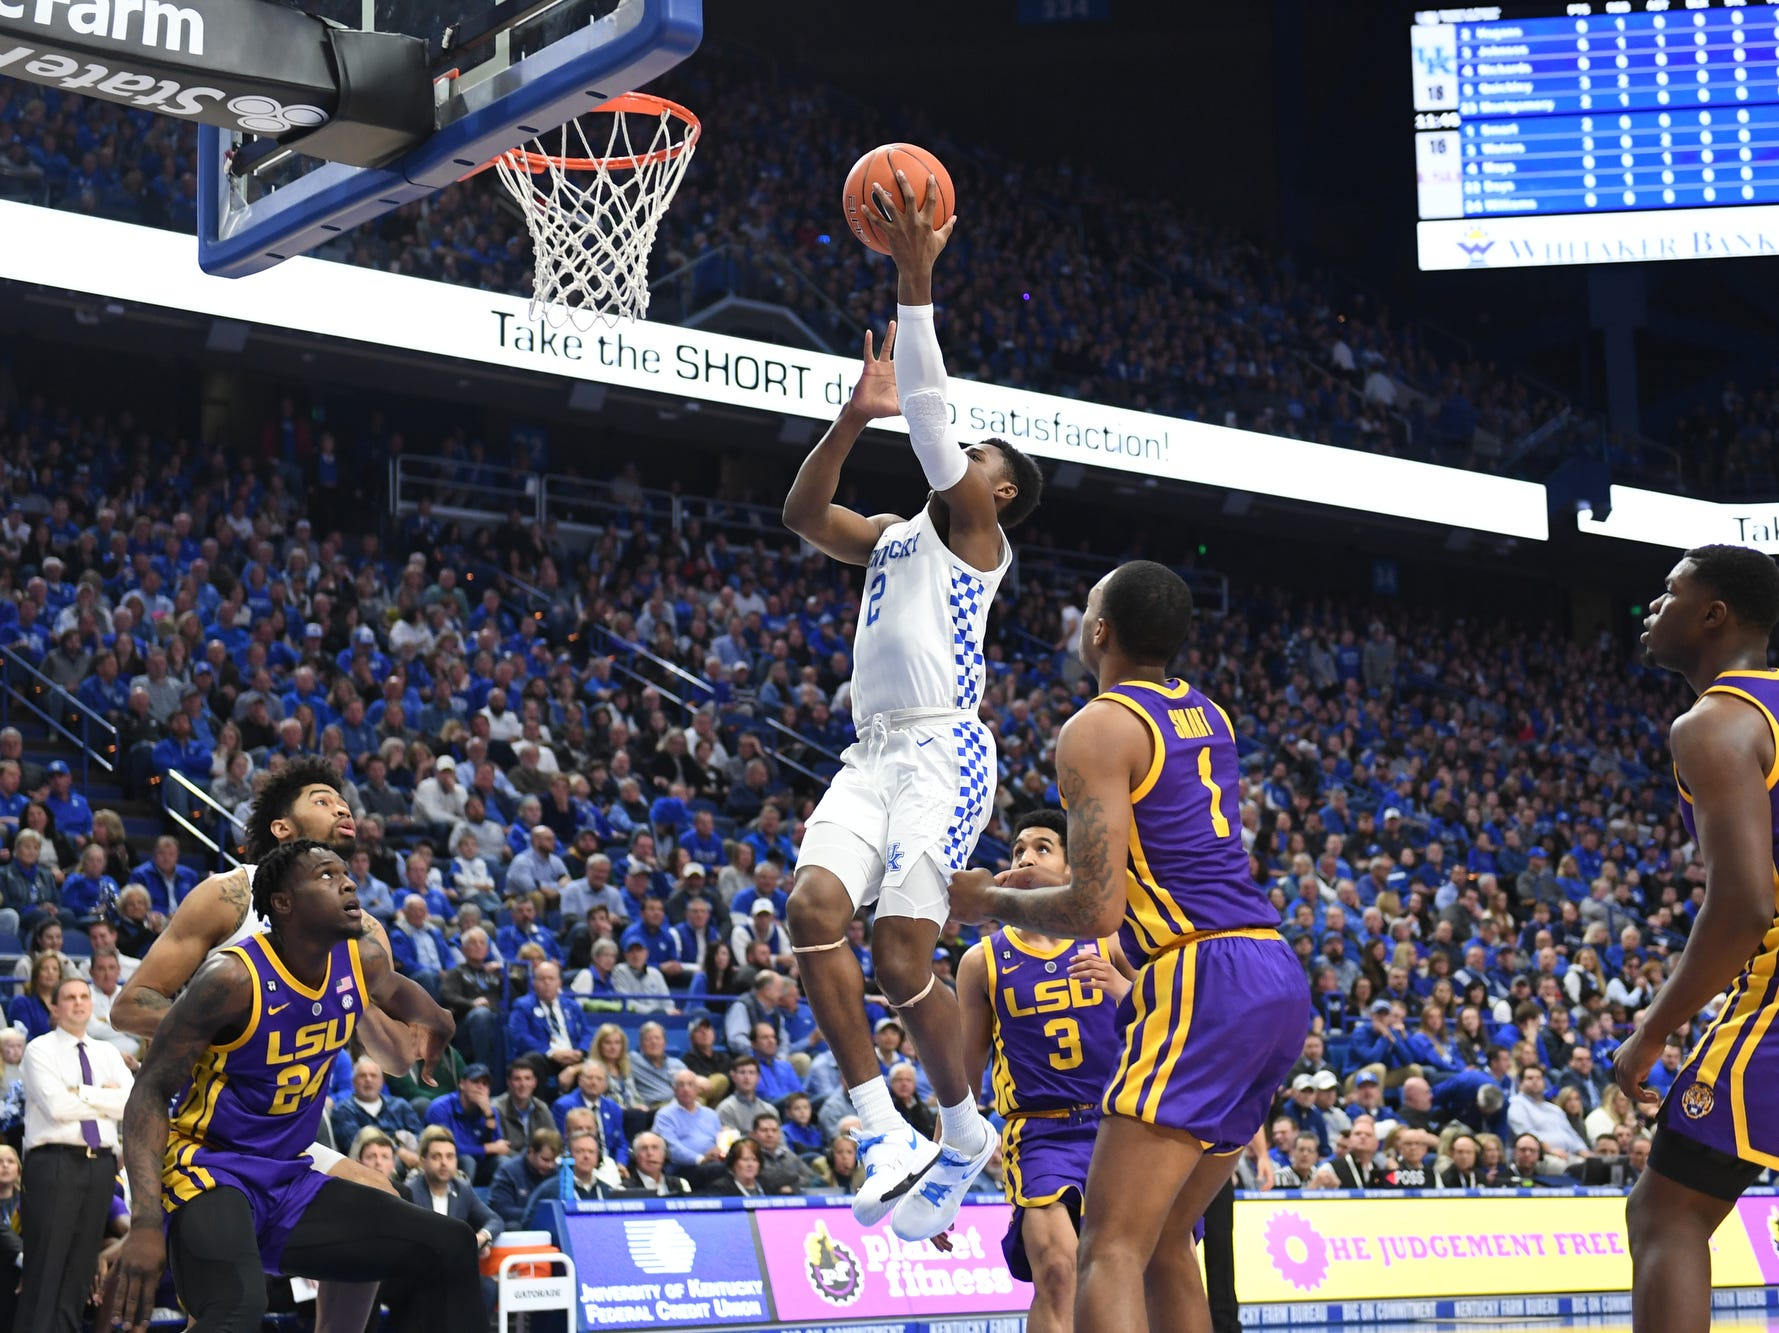 UK G Ashton Hagans lays up the ball during the University of Kentucky men's basketball game against Louisiana State University at Rupp Arena on Feb. 12, 2018.